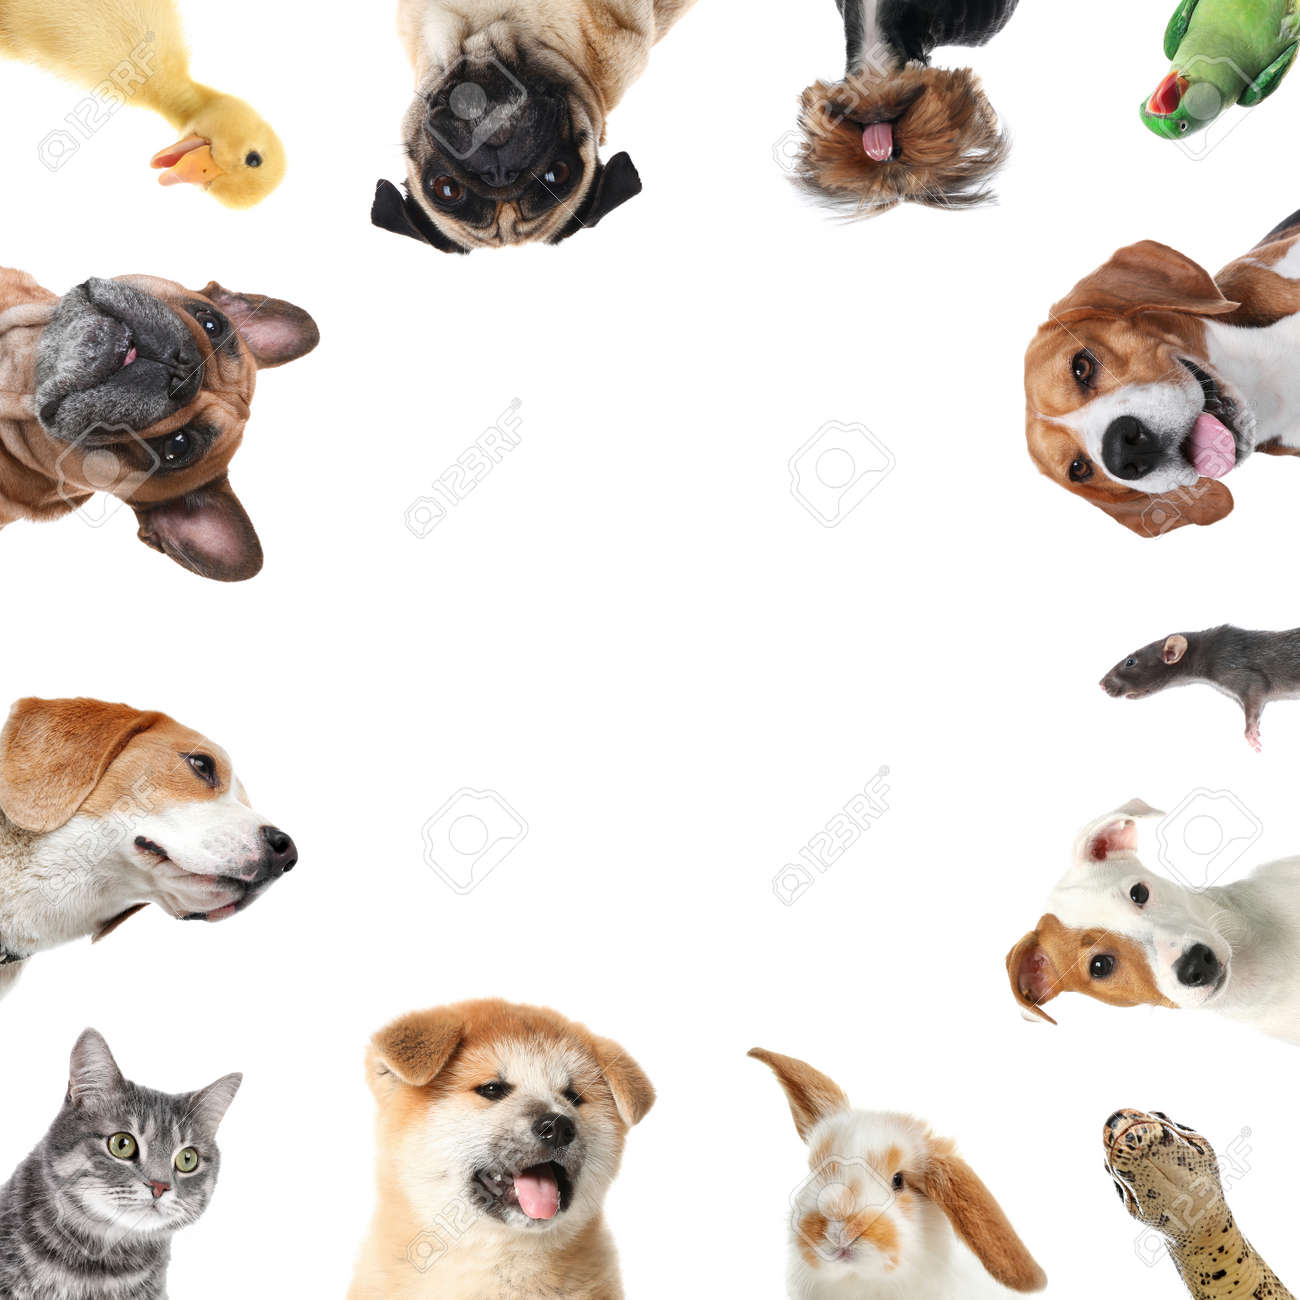 Cute different animals on white background, collage - 167715551